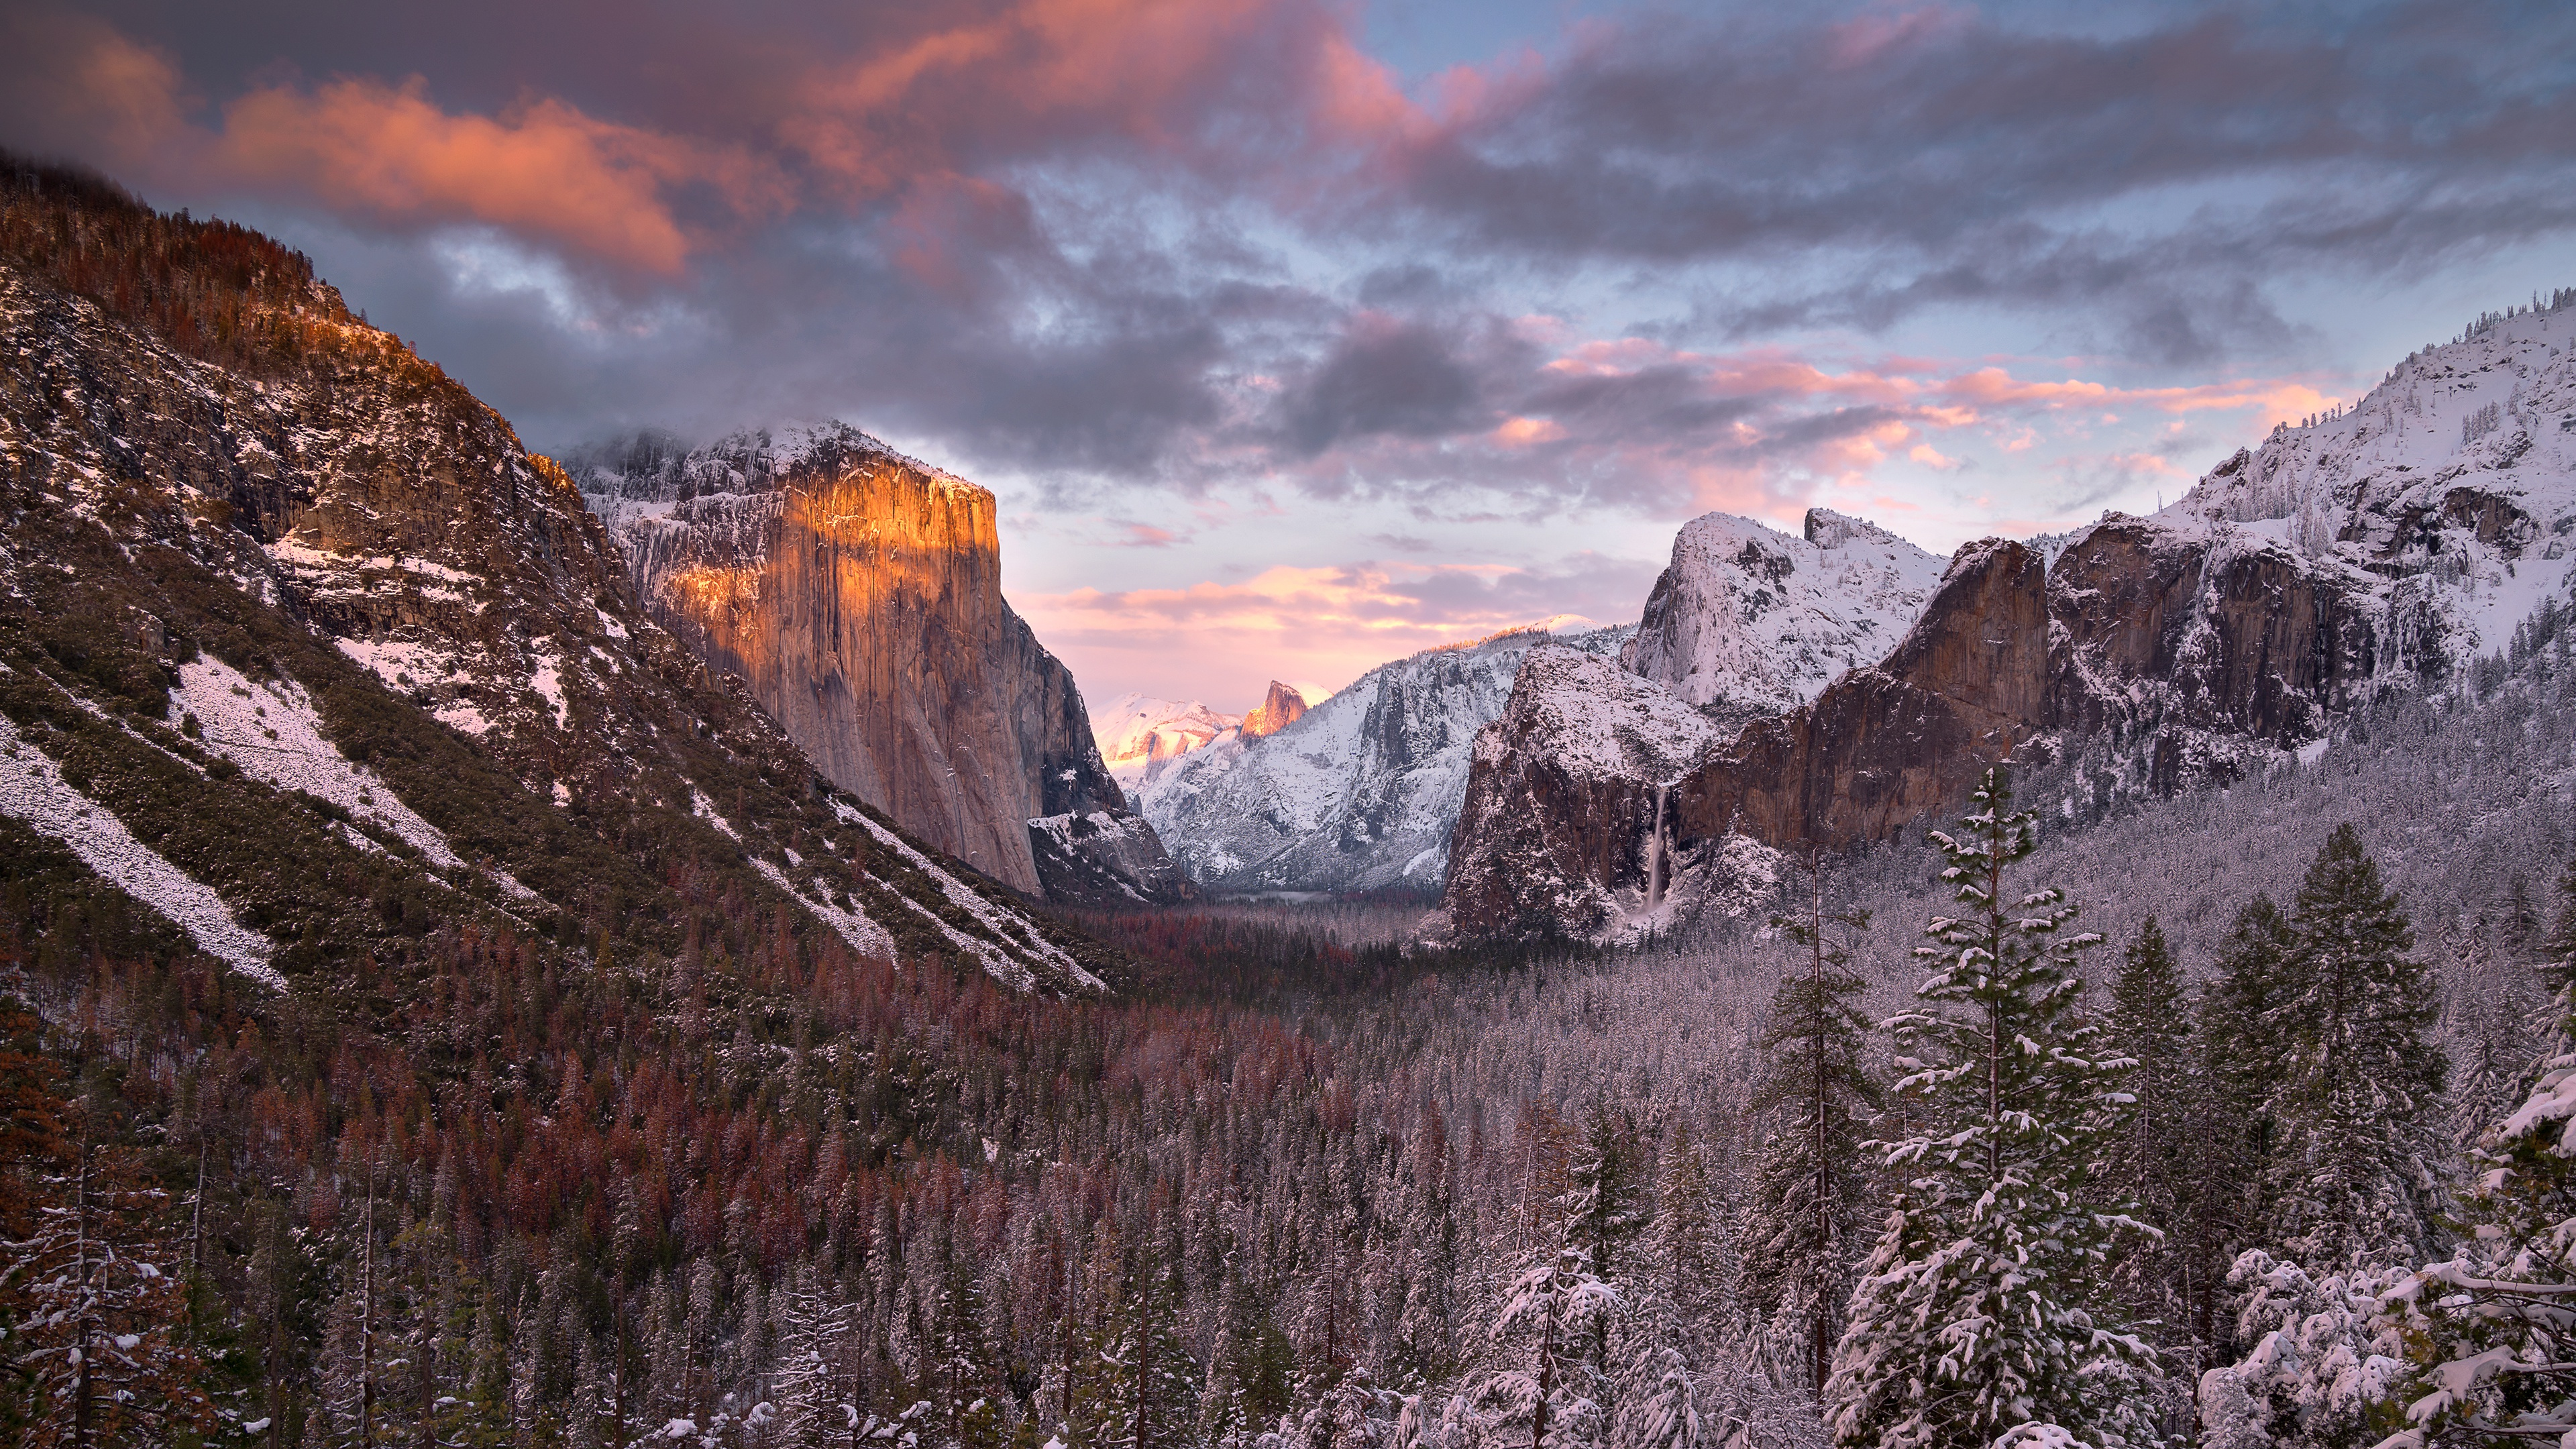 1920x1080 yosemite national park usa 4k laptop full hd - Yosemite national park hd wallpaper ...